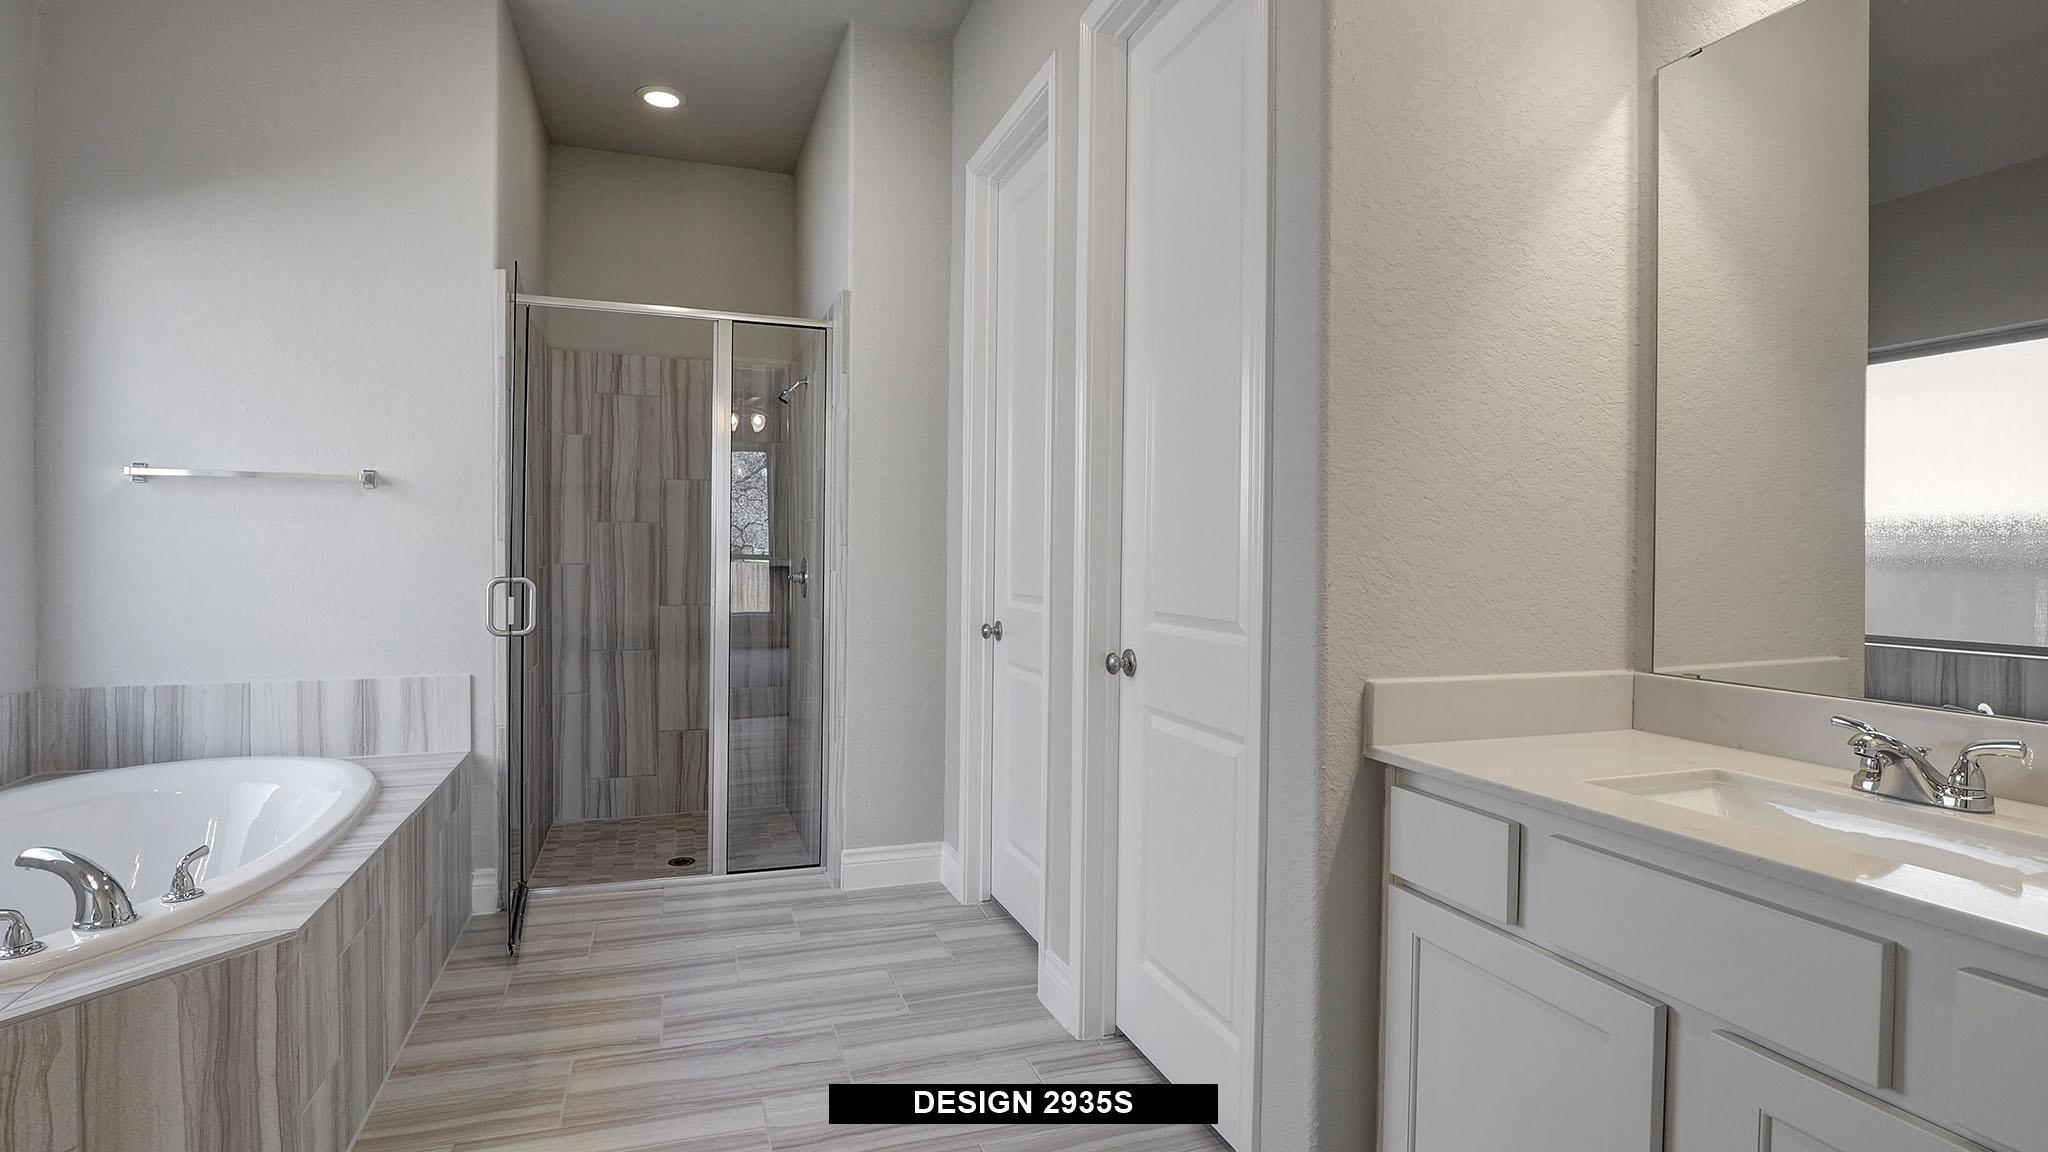 Bathroom featured in the 2935S By Perry Homes in San Antonio, TX